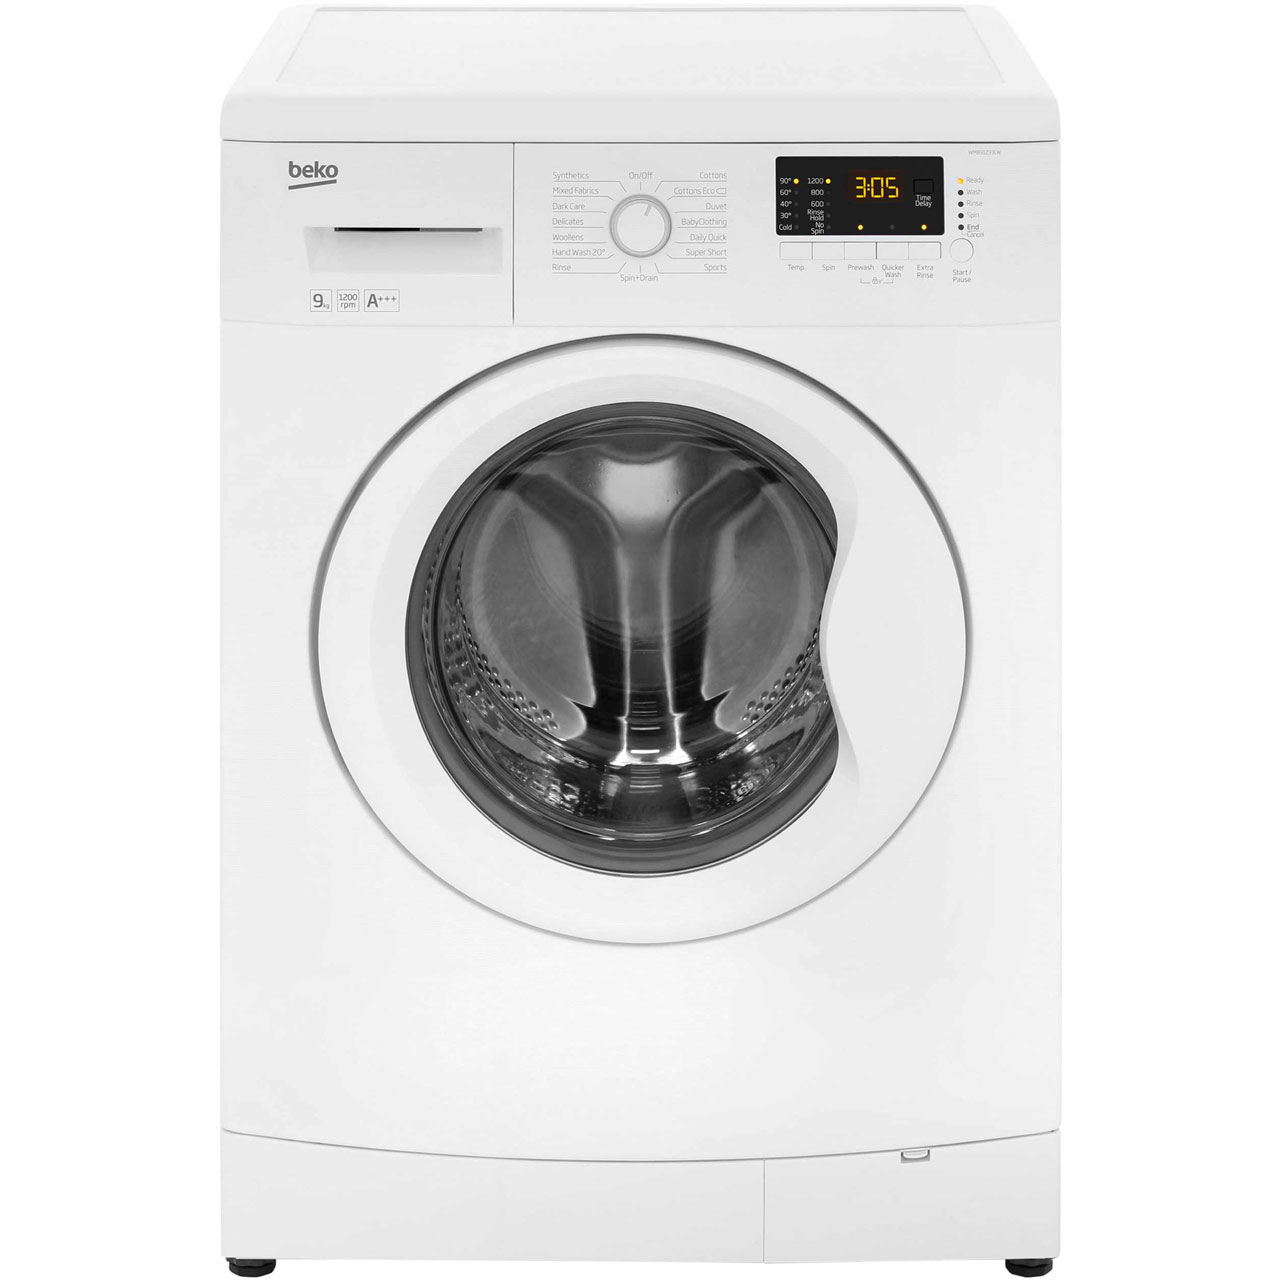 Beko WMB91233LW 9Kg Washing Machine with 1200 rpm - White